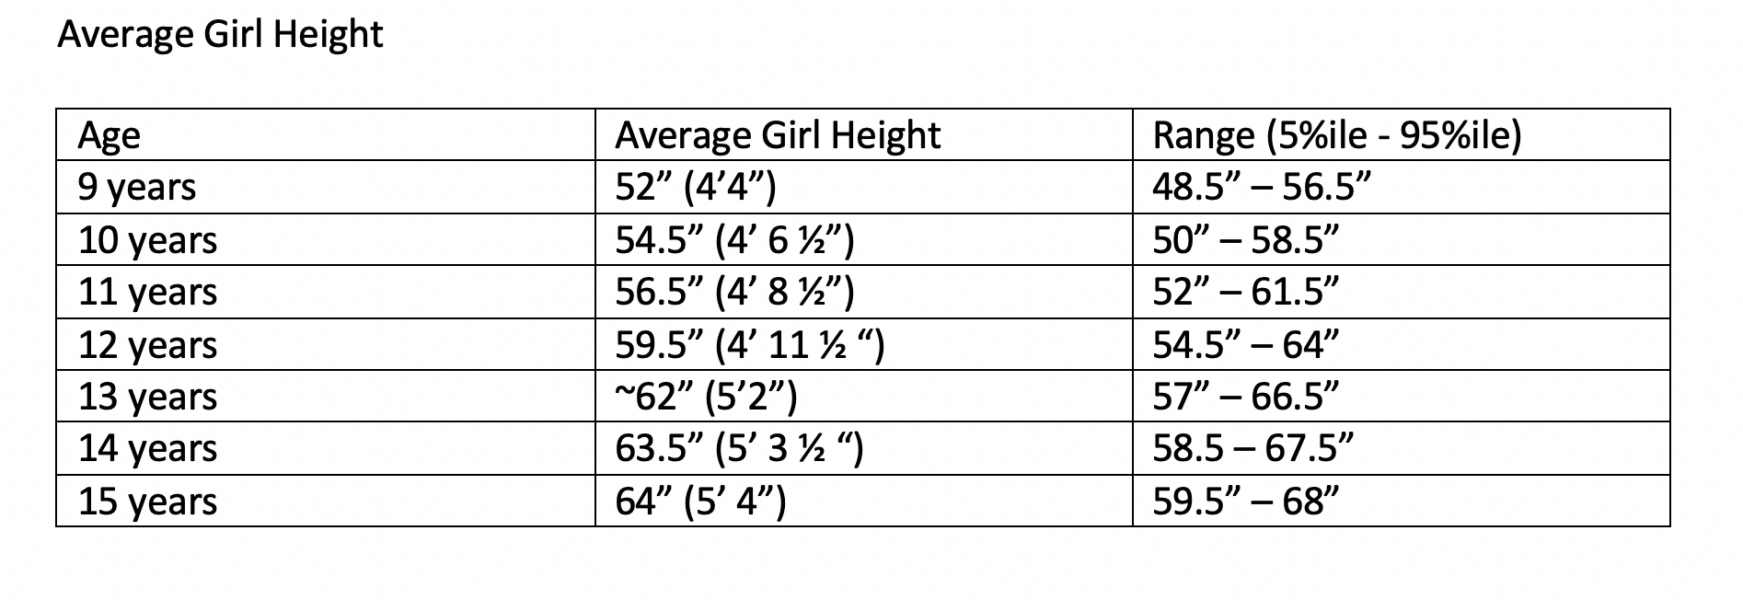 Average Girl Height Chart based on CDC Growth Charts